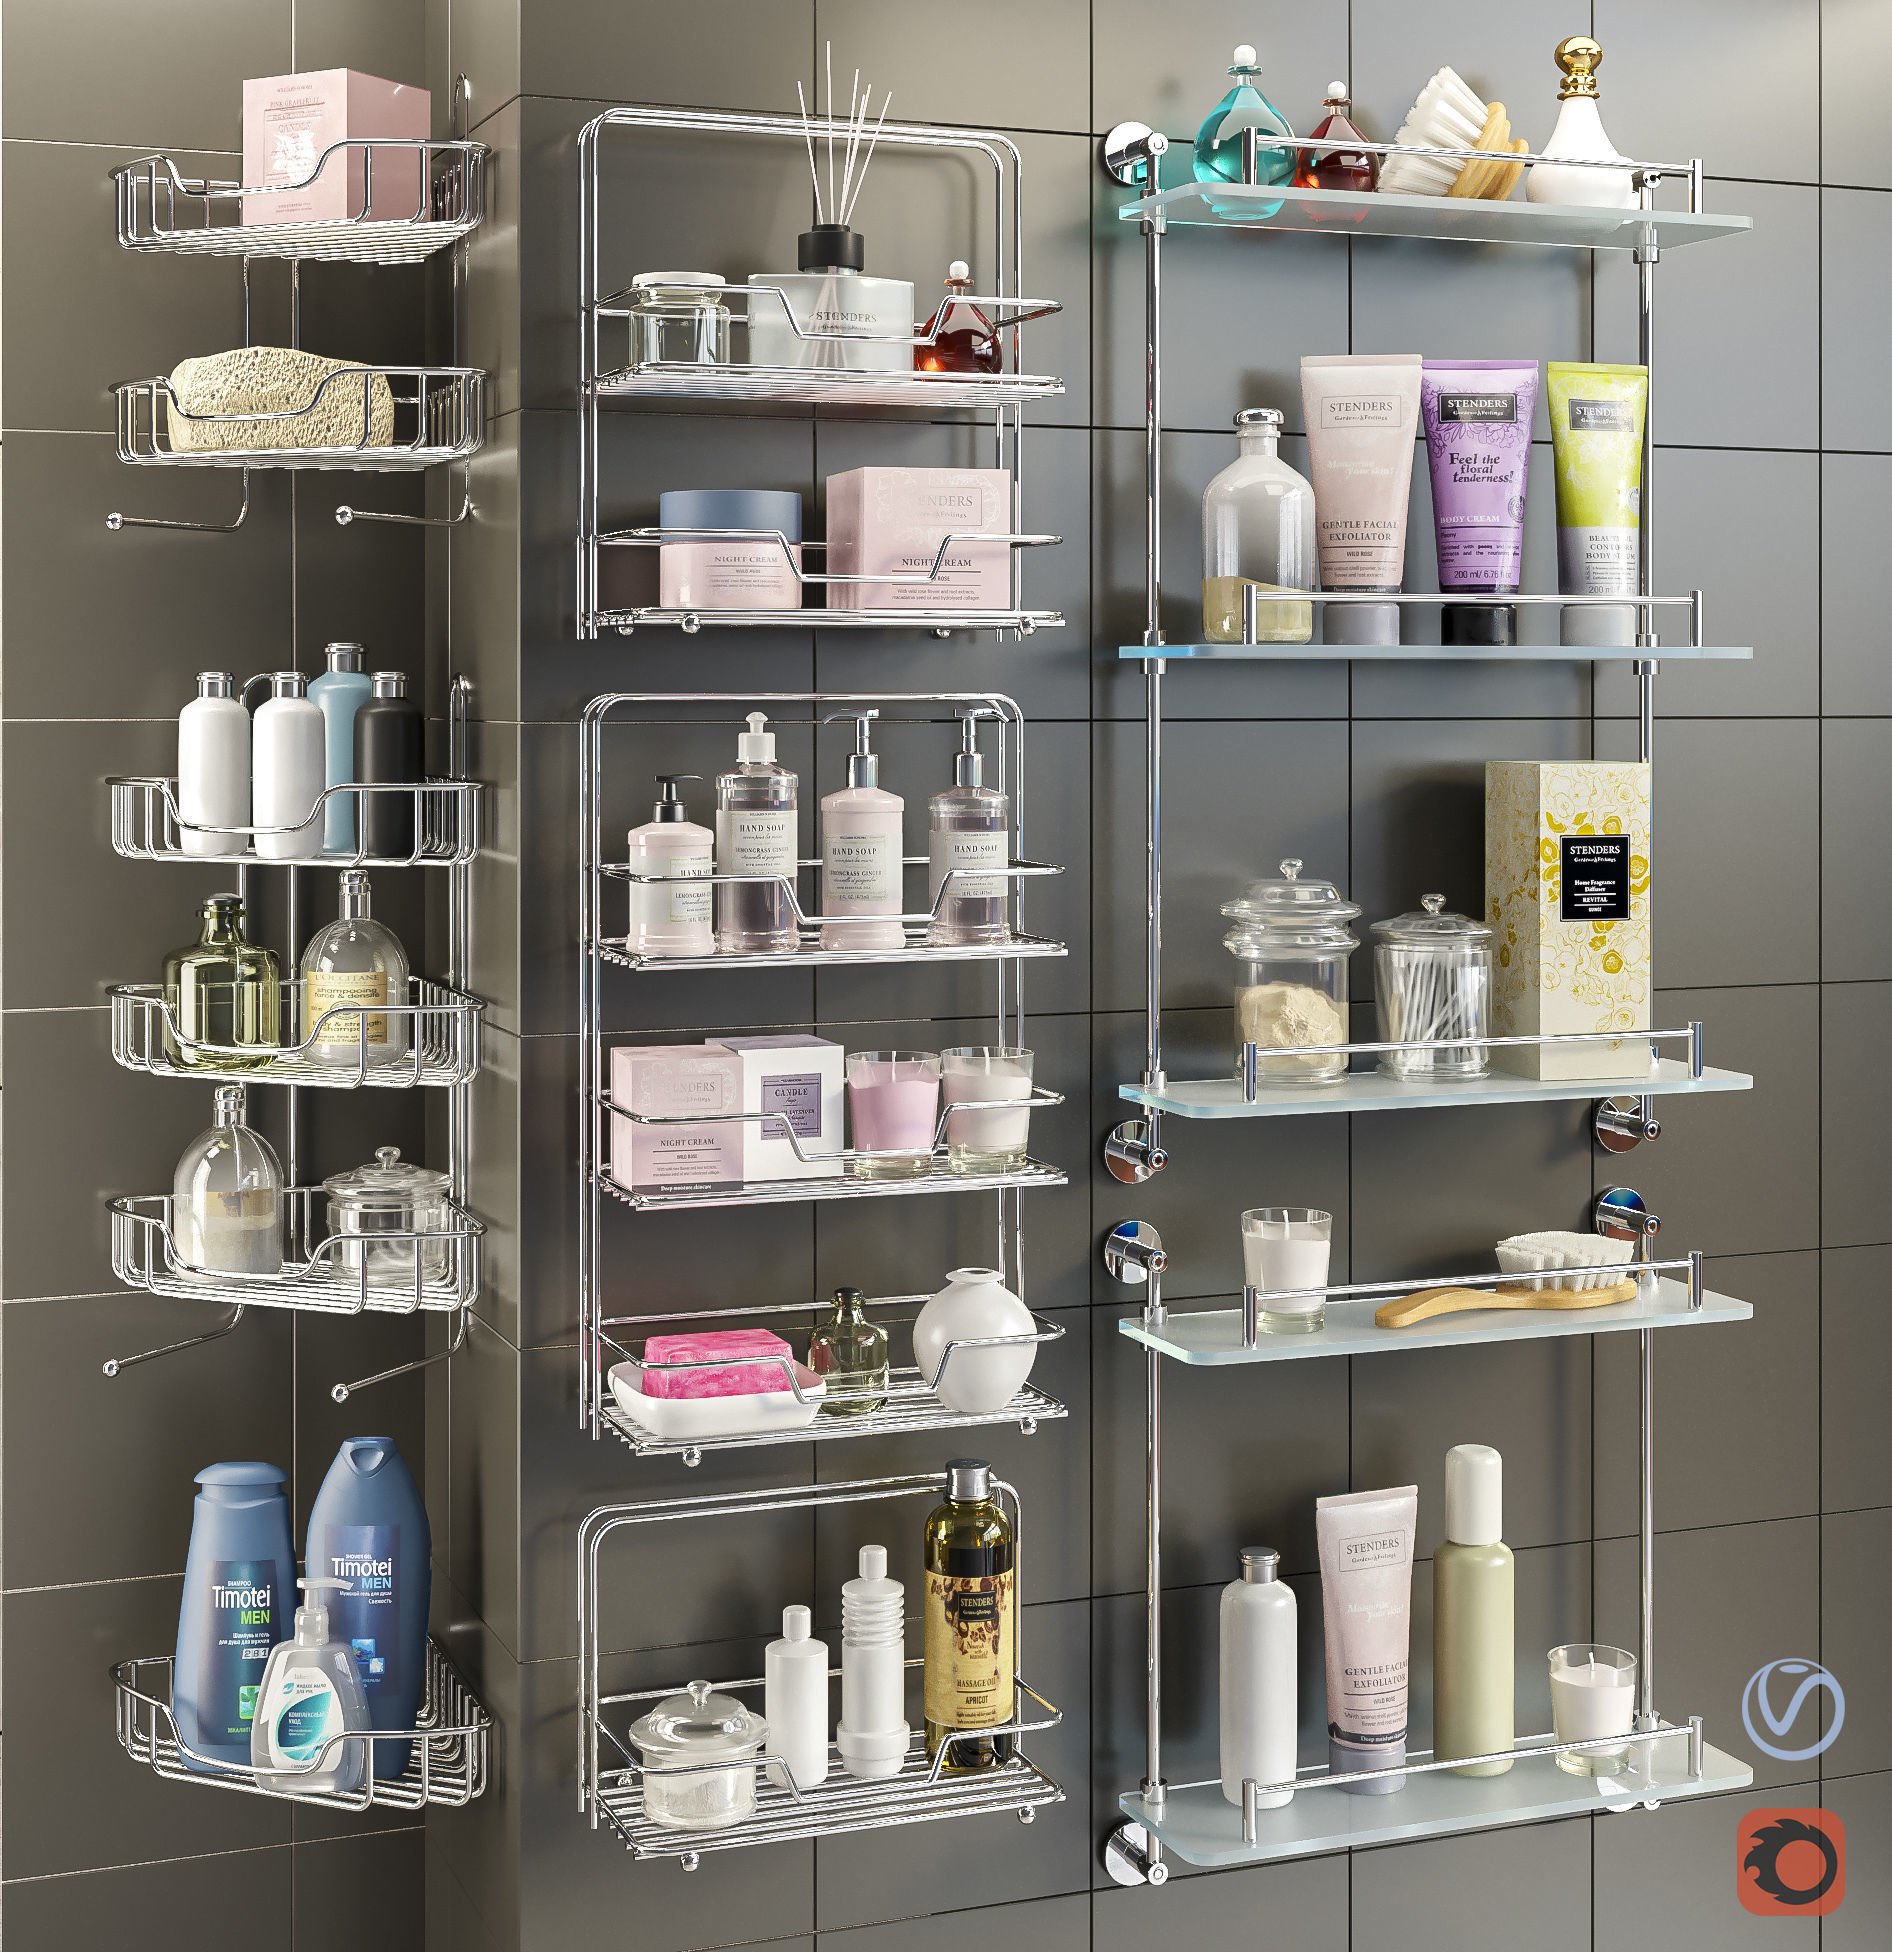 Accessories and cosmetics for the bathroom set 1